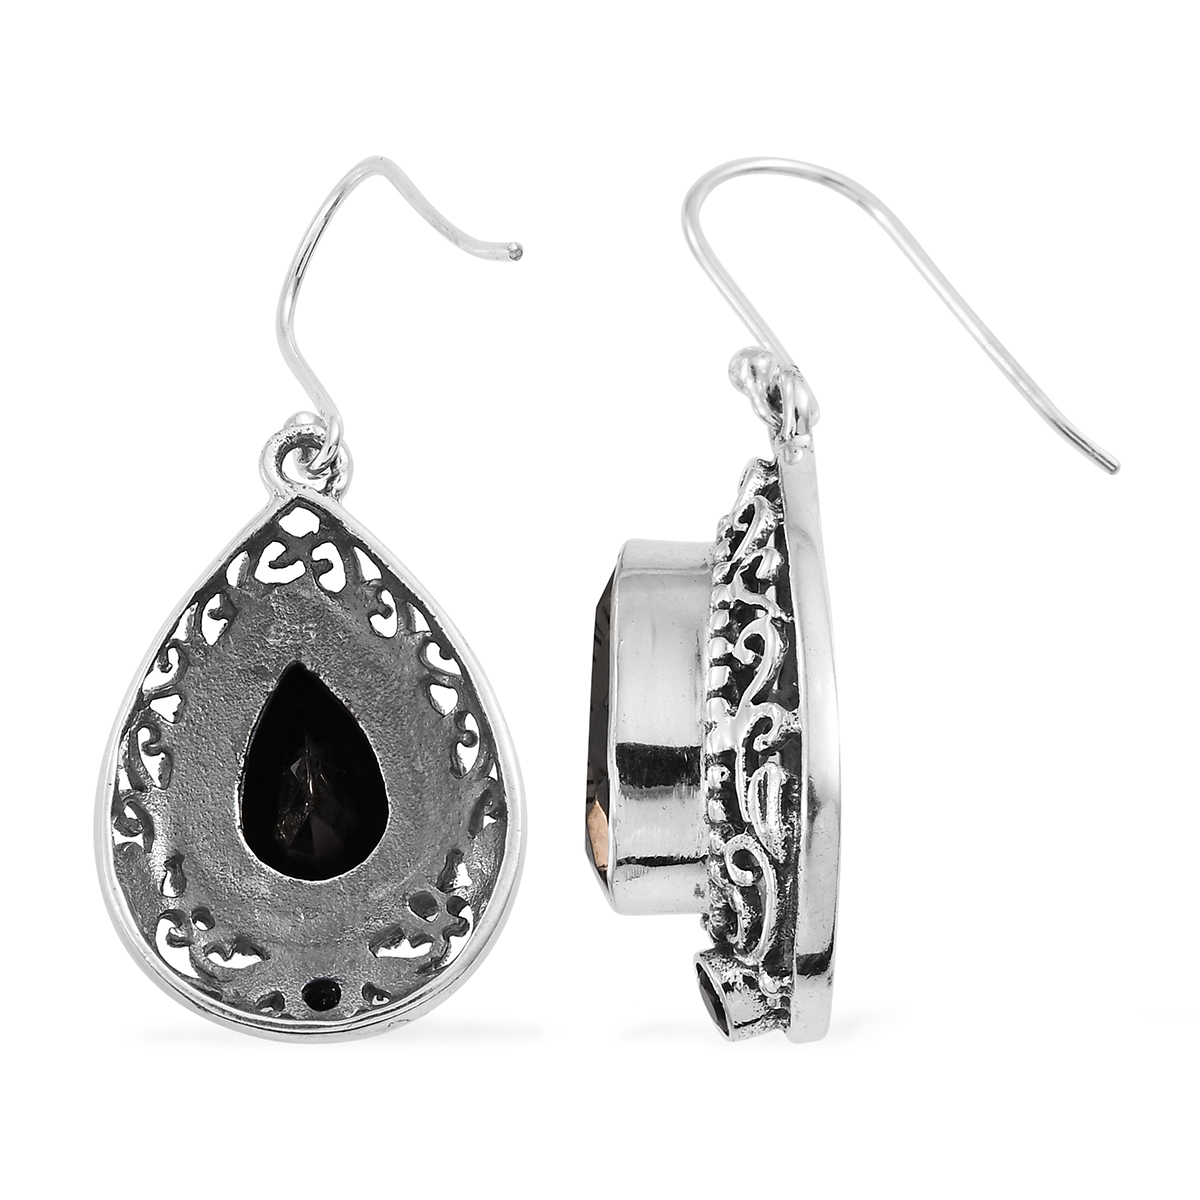 Artisan Crafted Silver Shungite, Thai Black Spinel Dangle Earrings in Sterling Silver 6.74 ctw